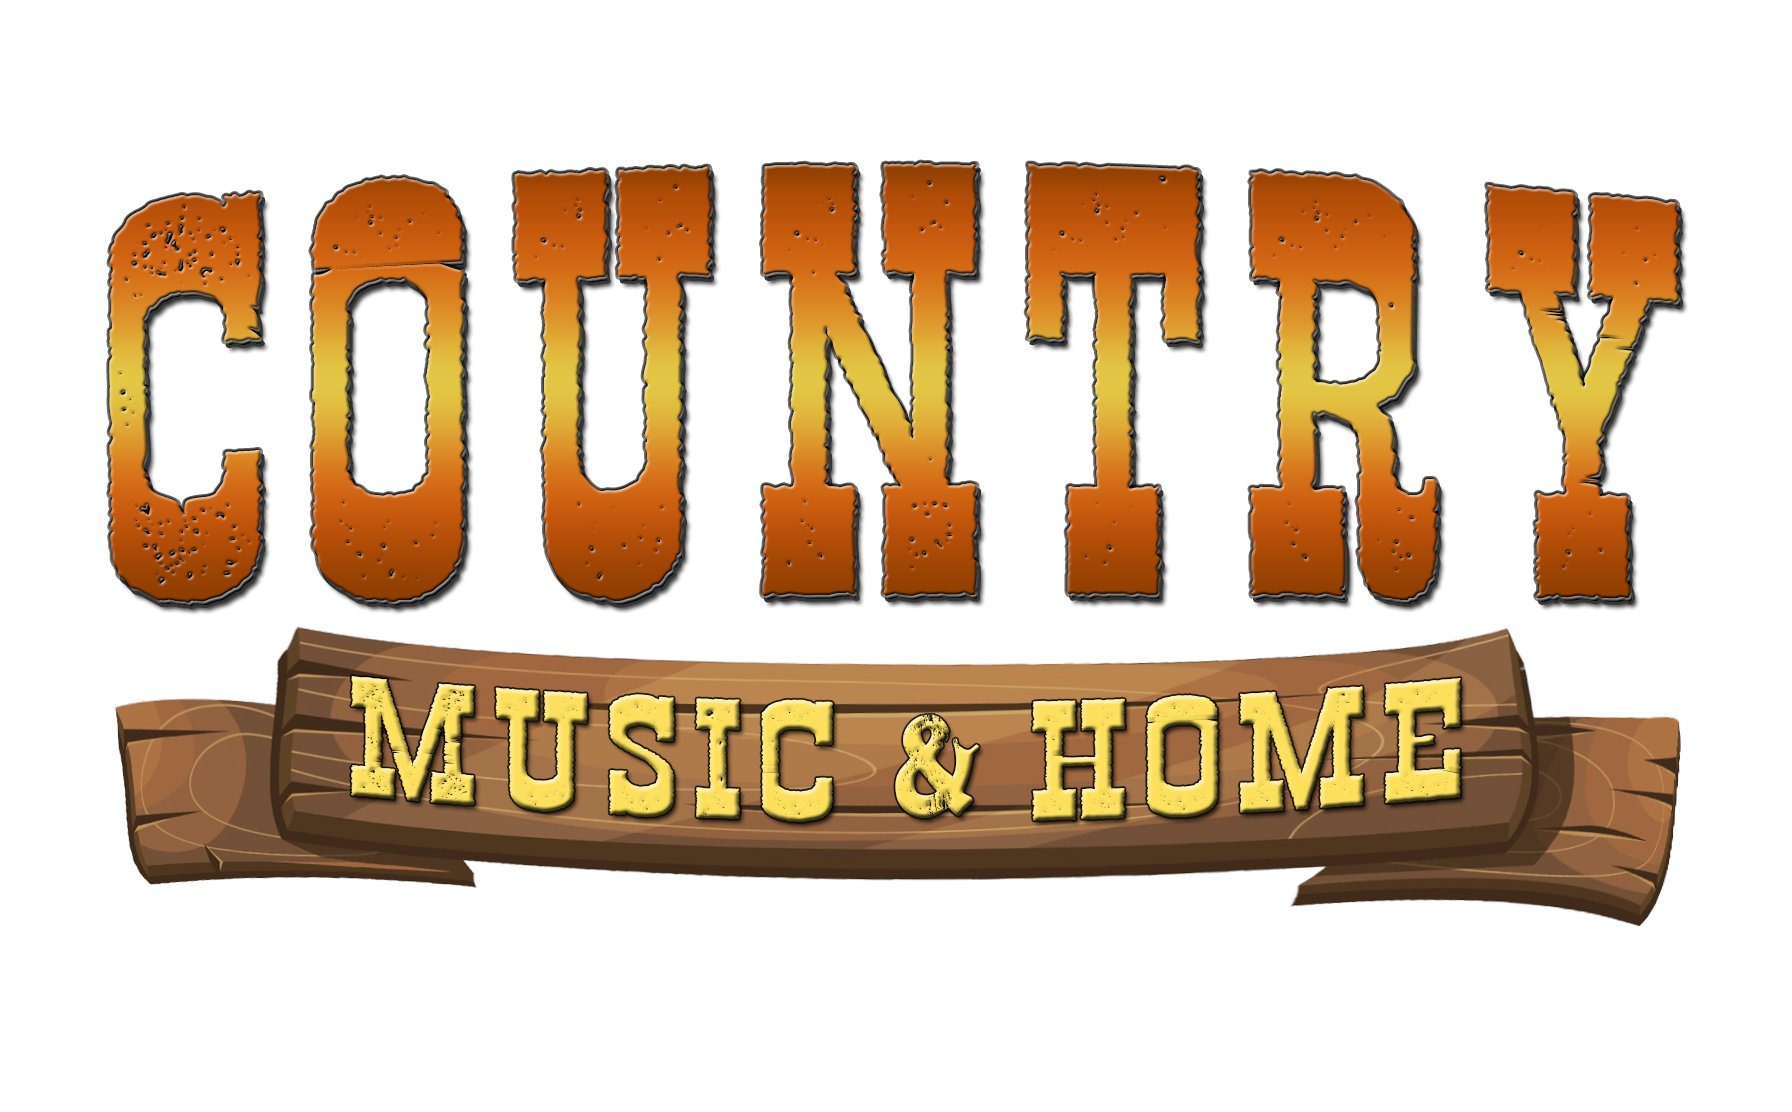 COUNTRY MUSIC & HOME